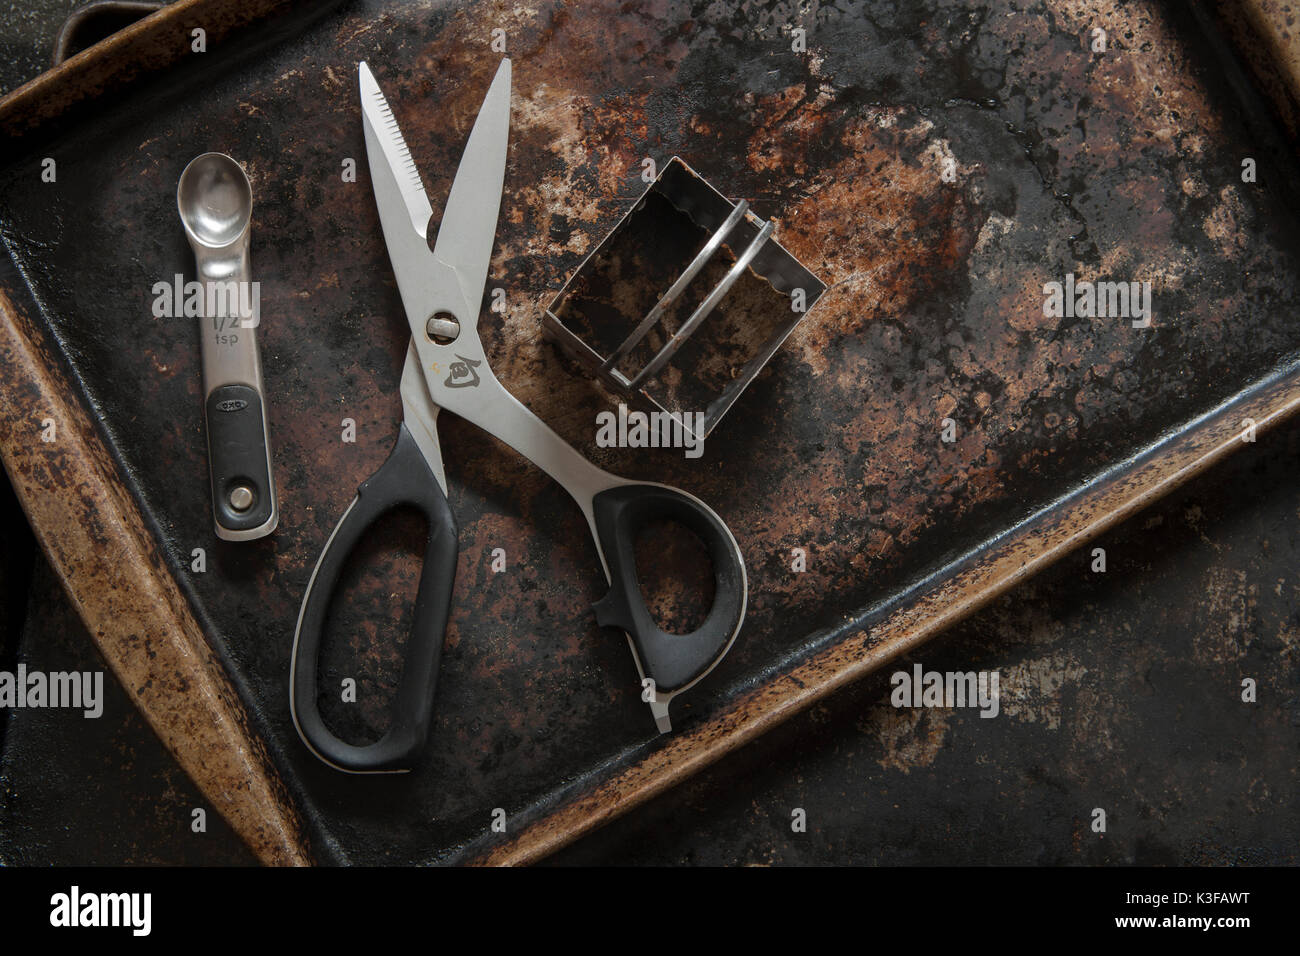 Baking Tray with Scissors, Square Cutter and Measuring Spoon - Stock Image